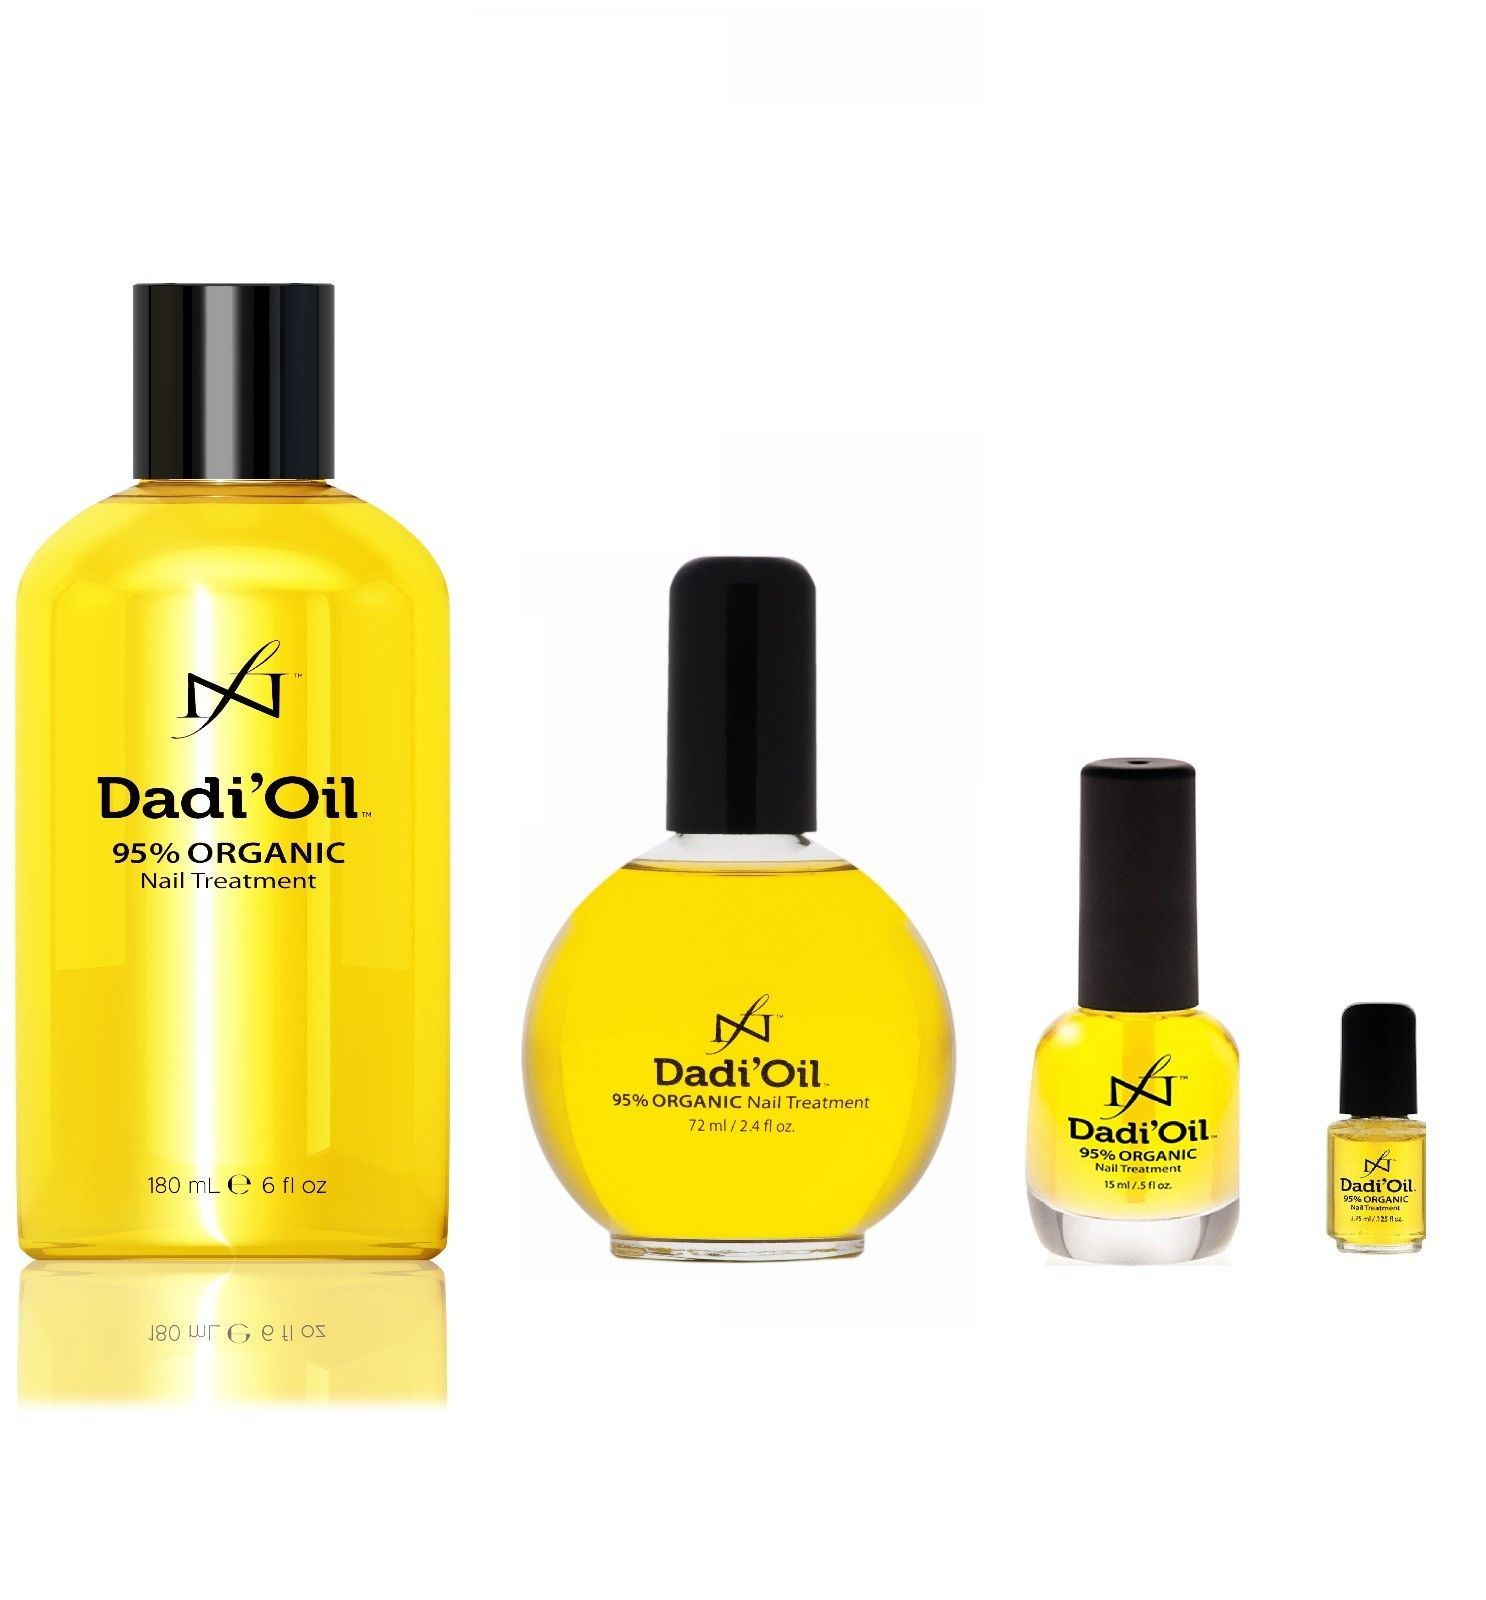 Dadi Oil Nail Treatment - All Sizes For Cuticle Treatments - | eBay